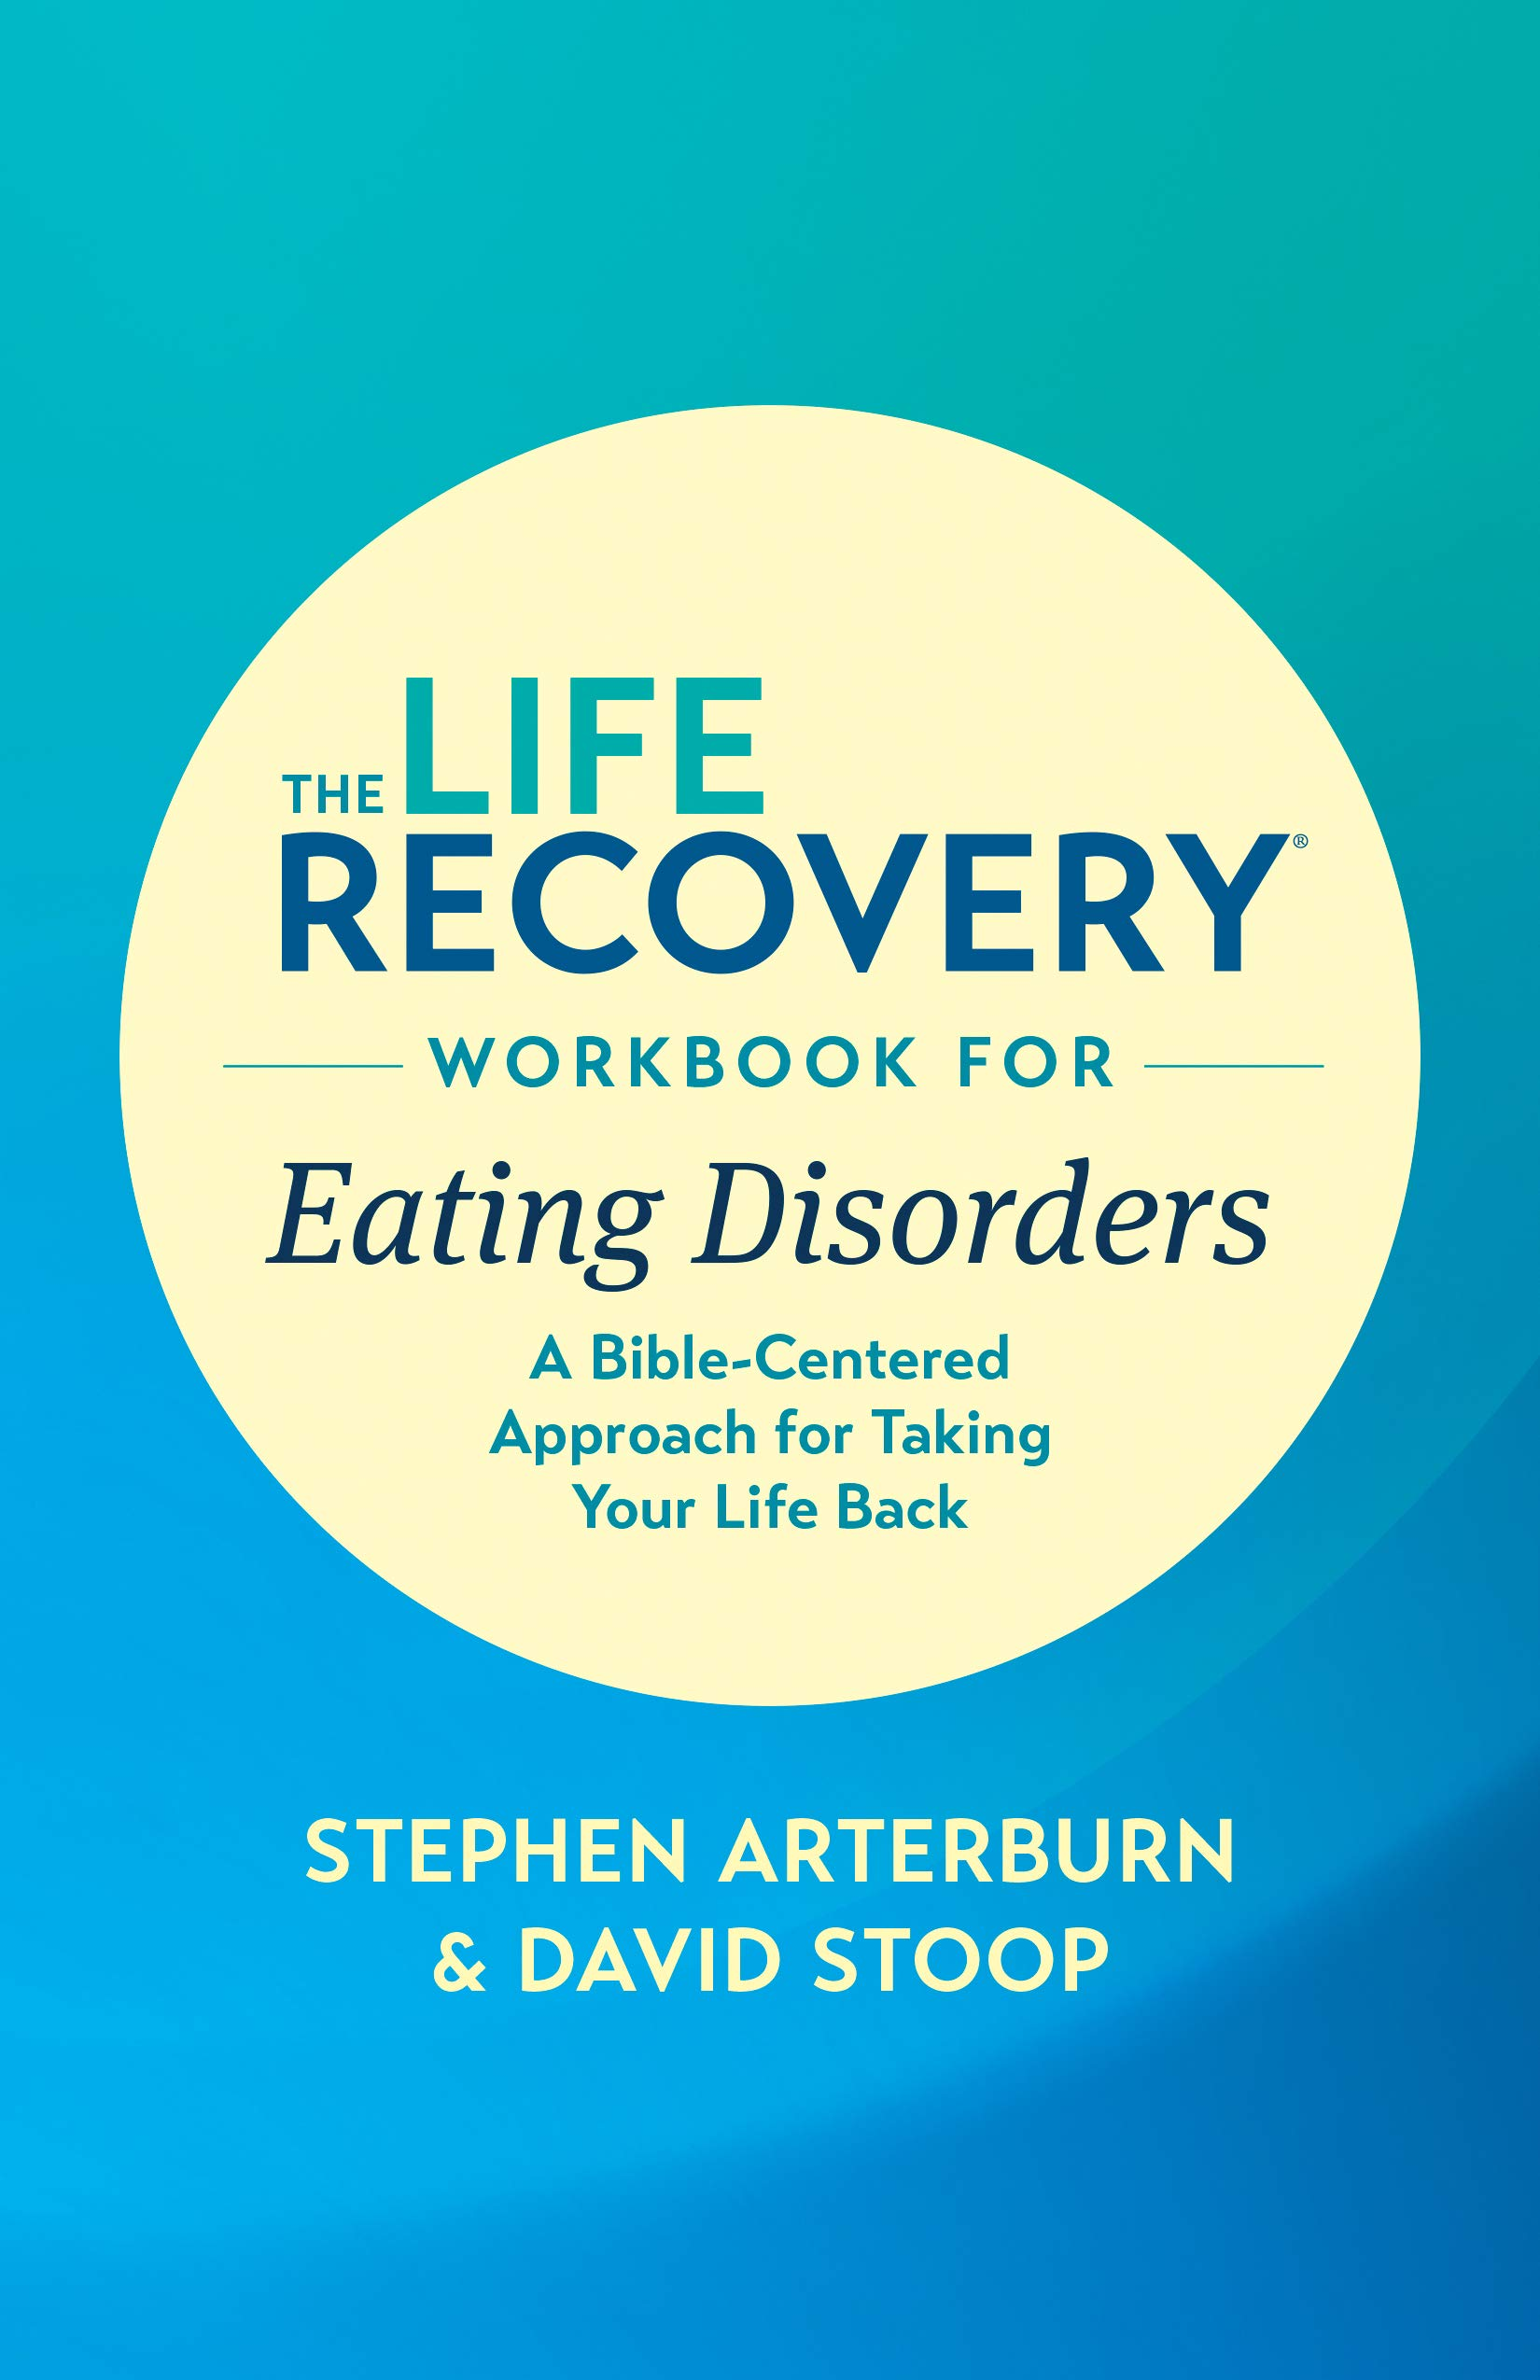 The Life Recovery Workbook for Eating Disorders: A Bible